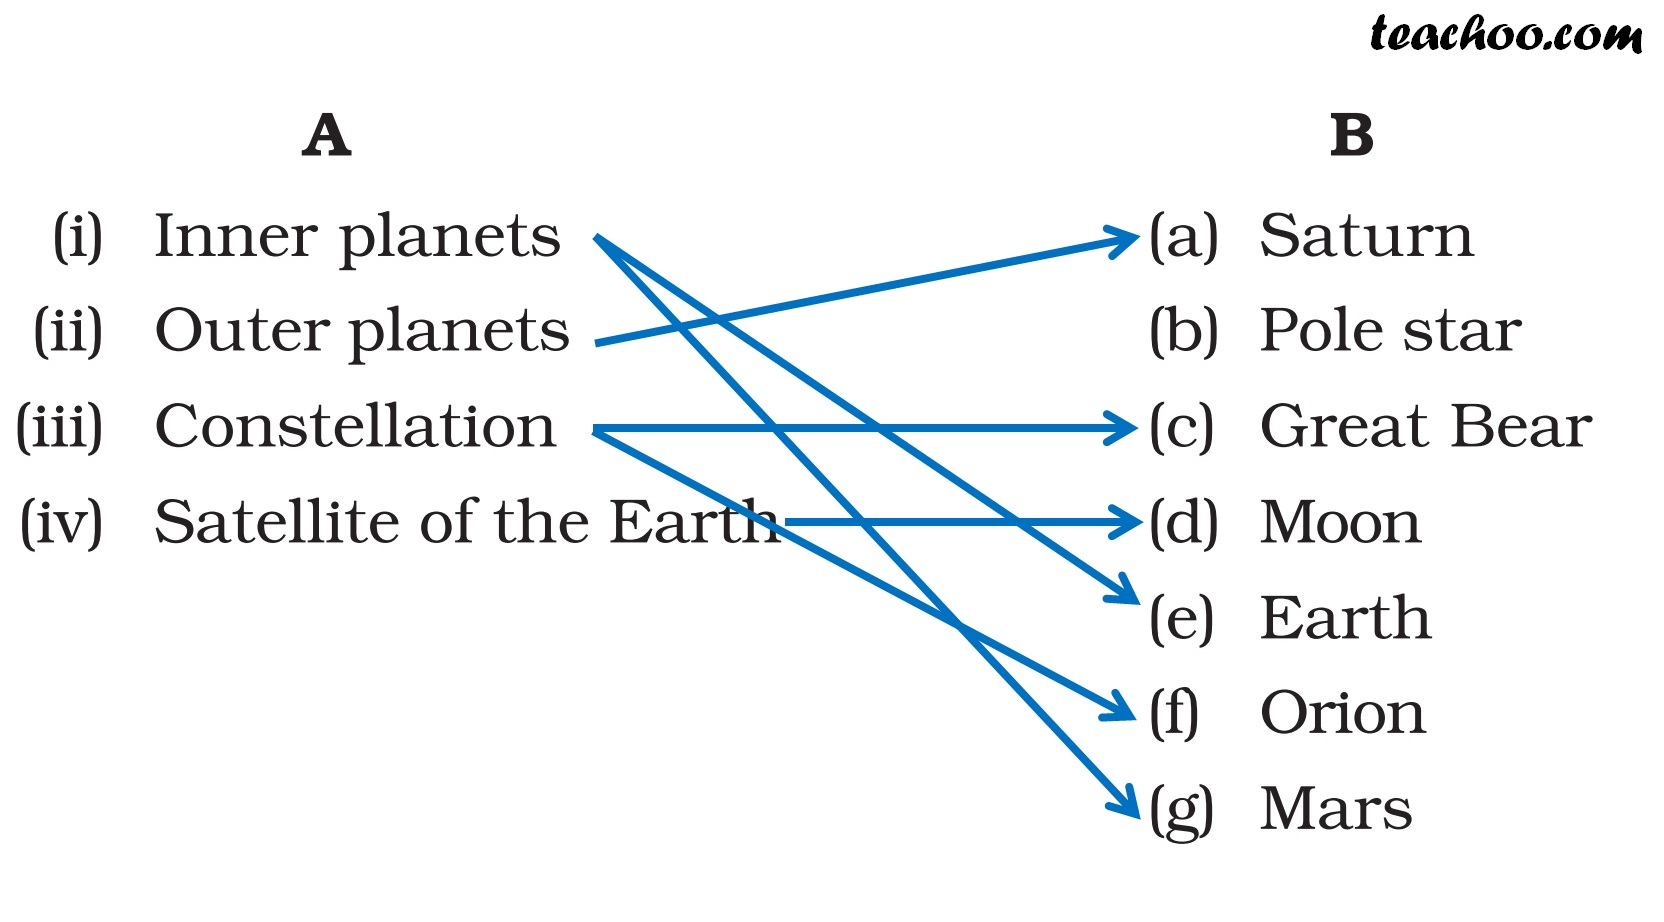 NCERT Question 6 Answer - Chapter 17 Class 8 Science - Stars and the Solar System - Teachoo.jpg